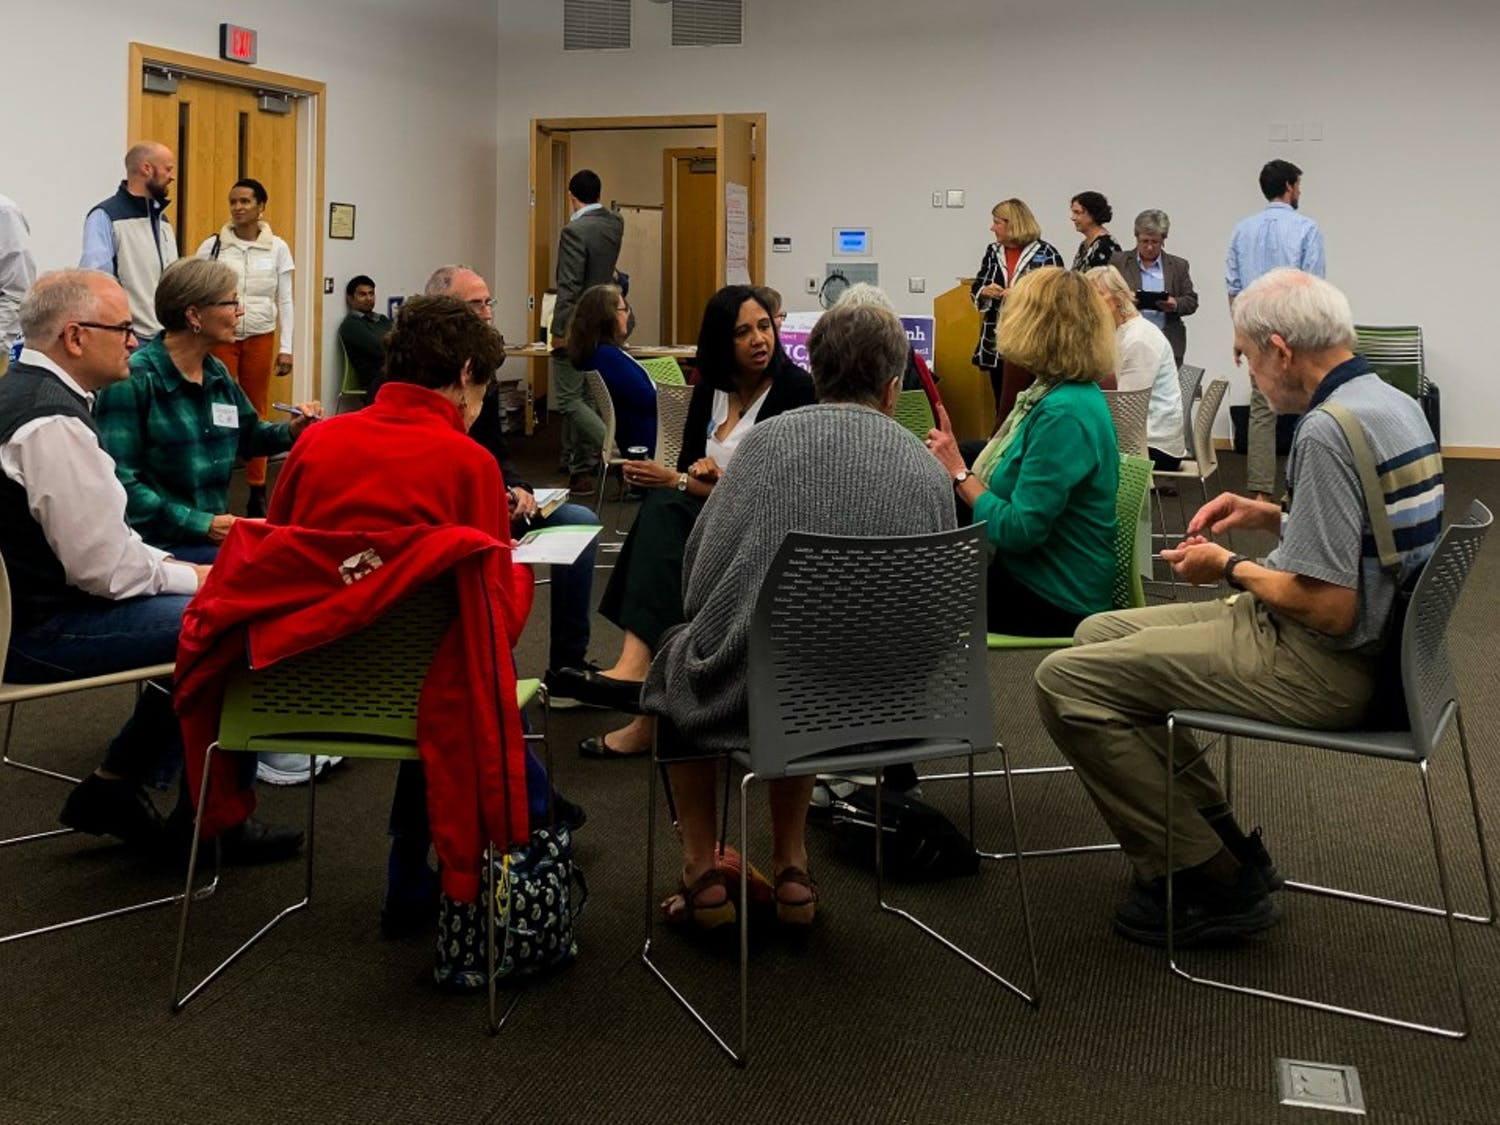 Candidates and participants discuss their plans in small group discussions at the Chapel Hill Public Library on Wednesday, October 23.